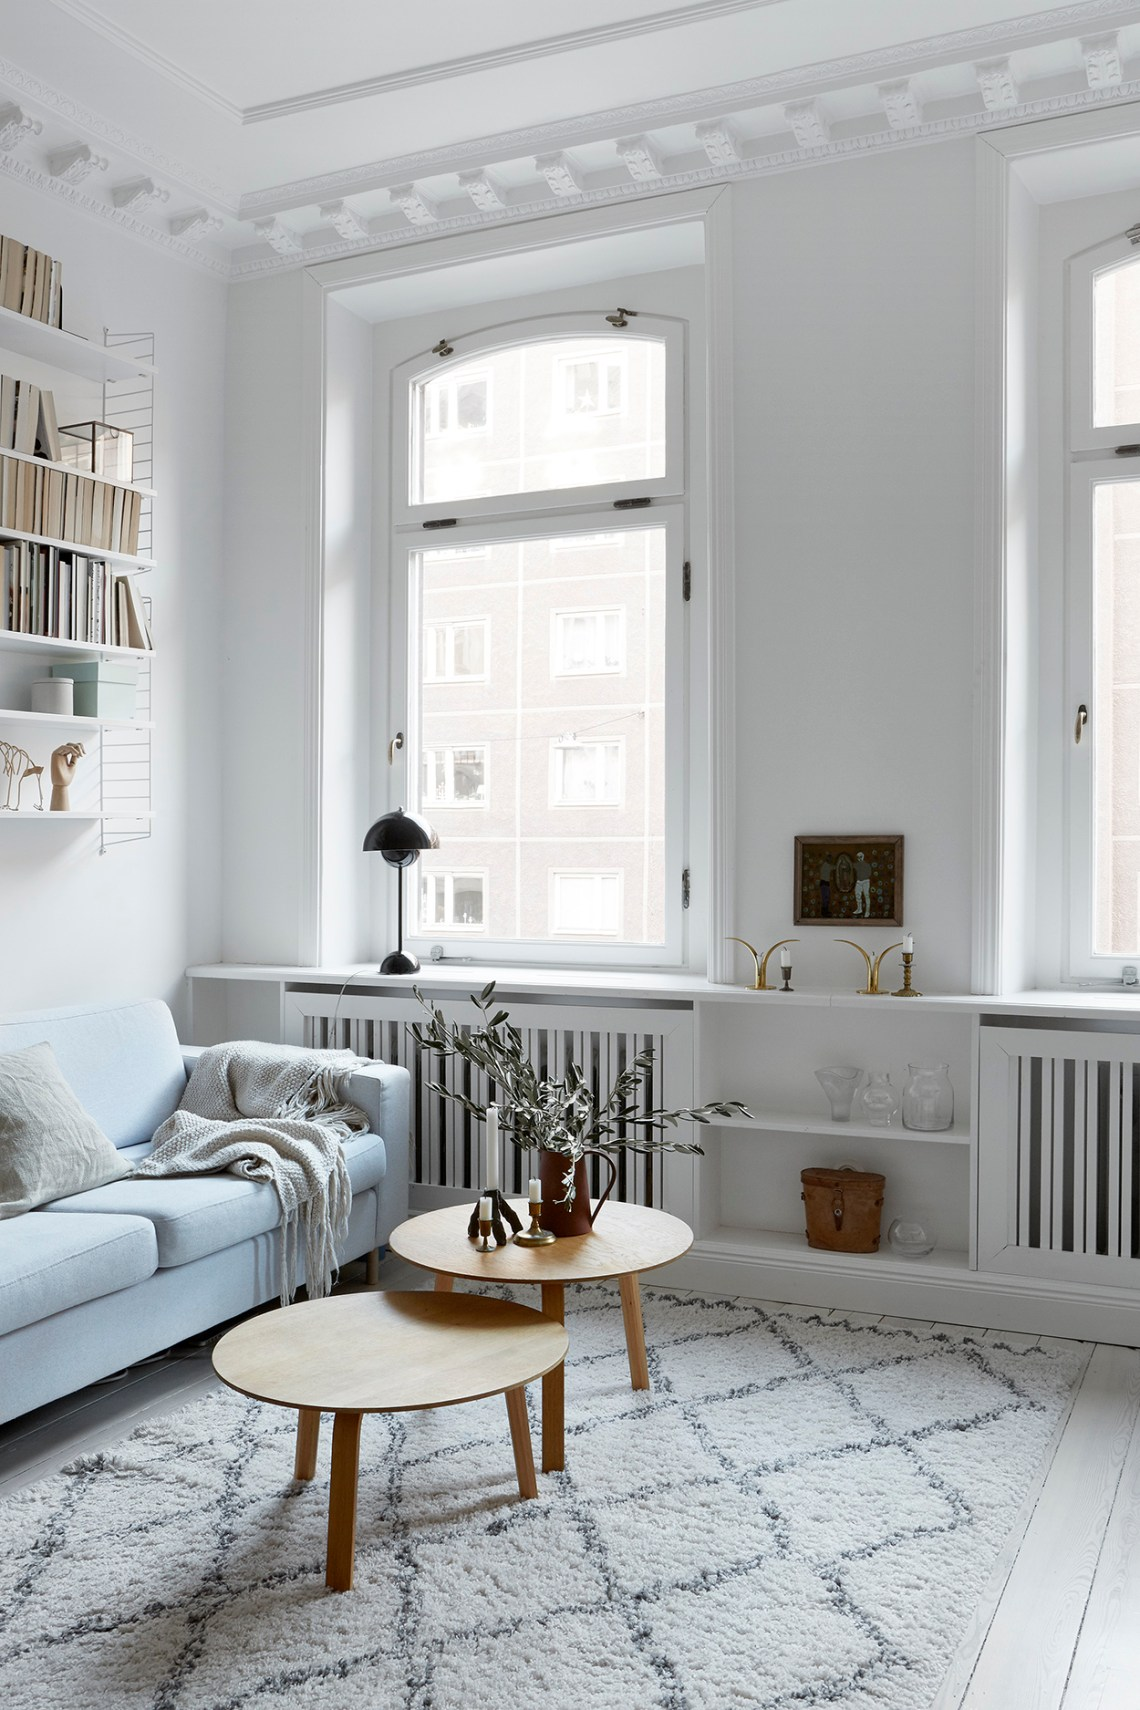 Cozy turn of the century home - via Coco Lapine Design